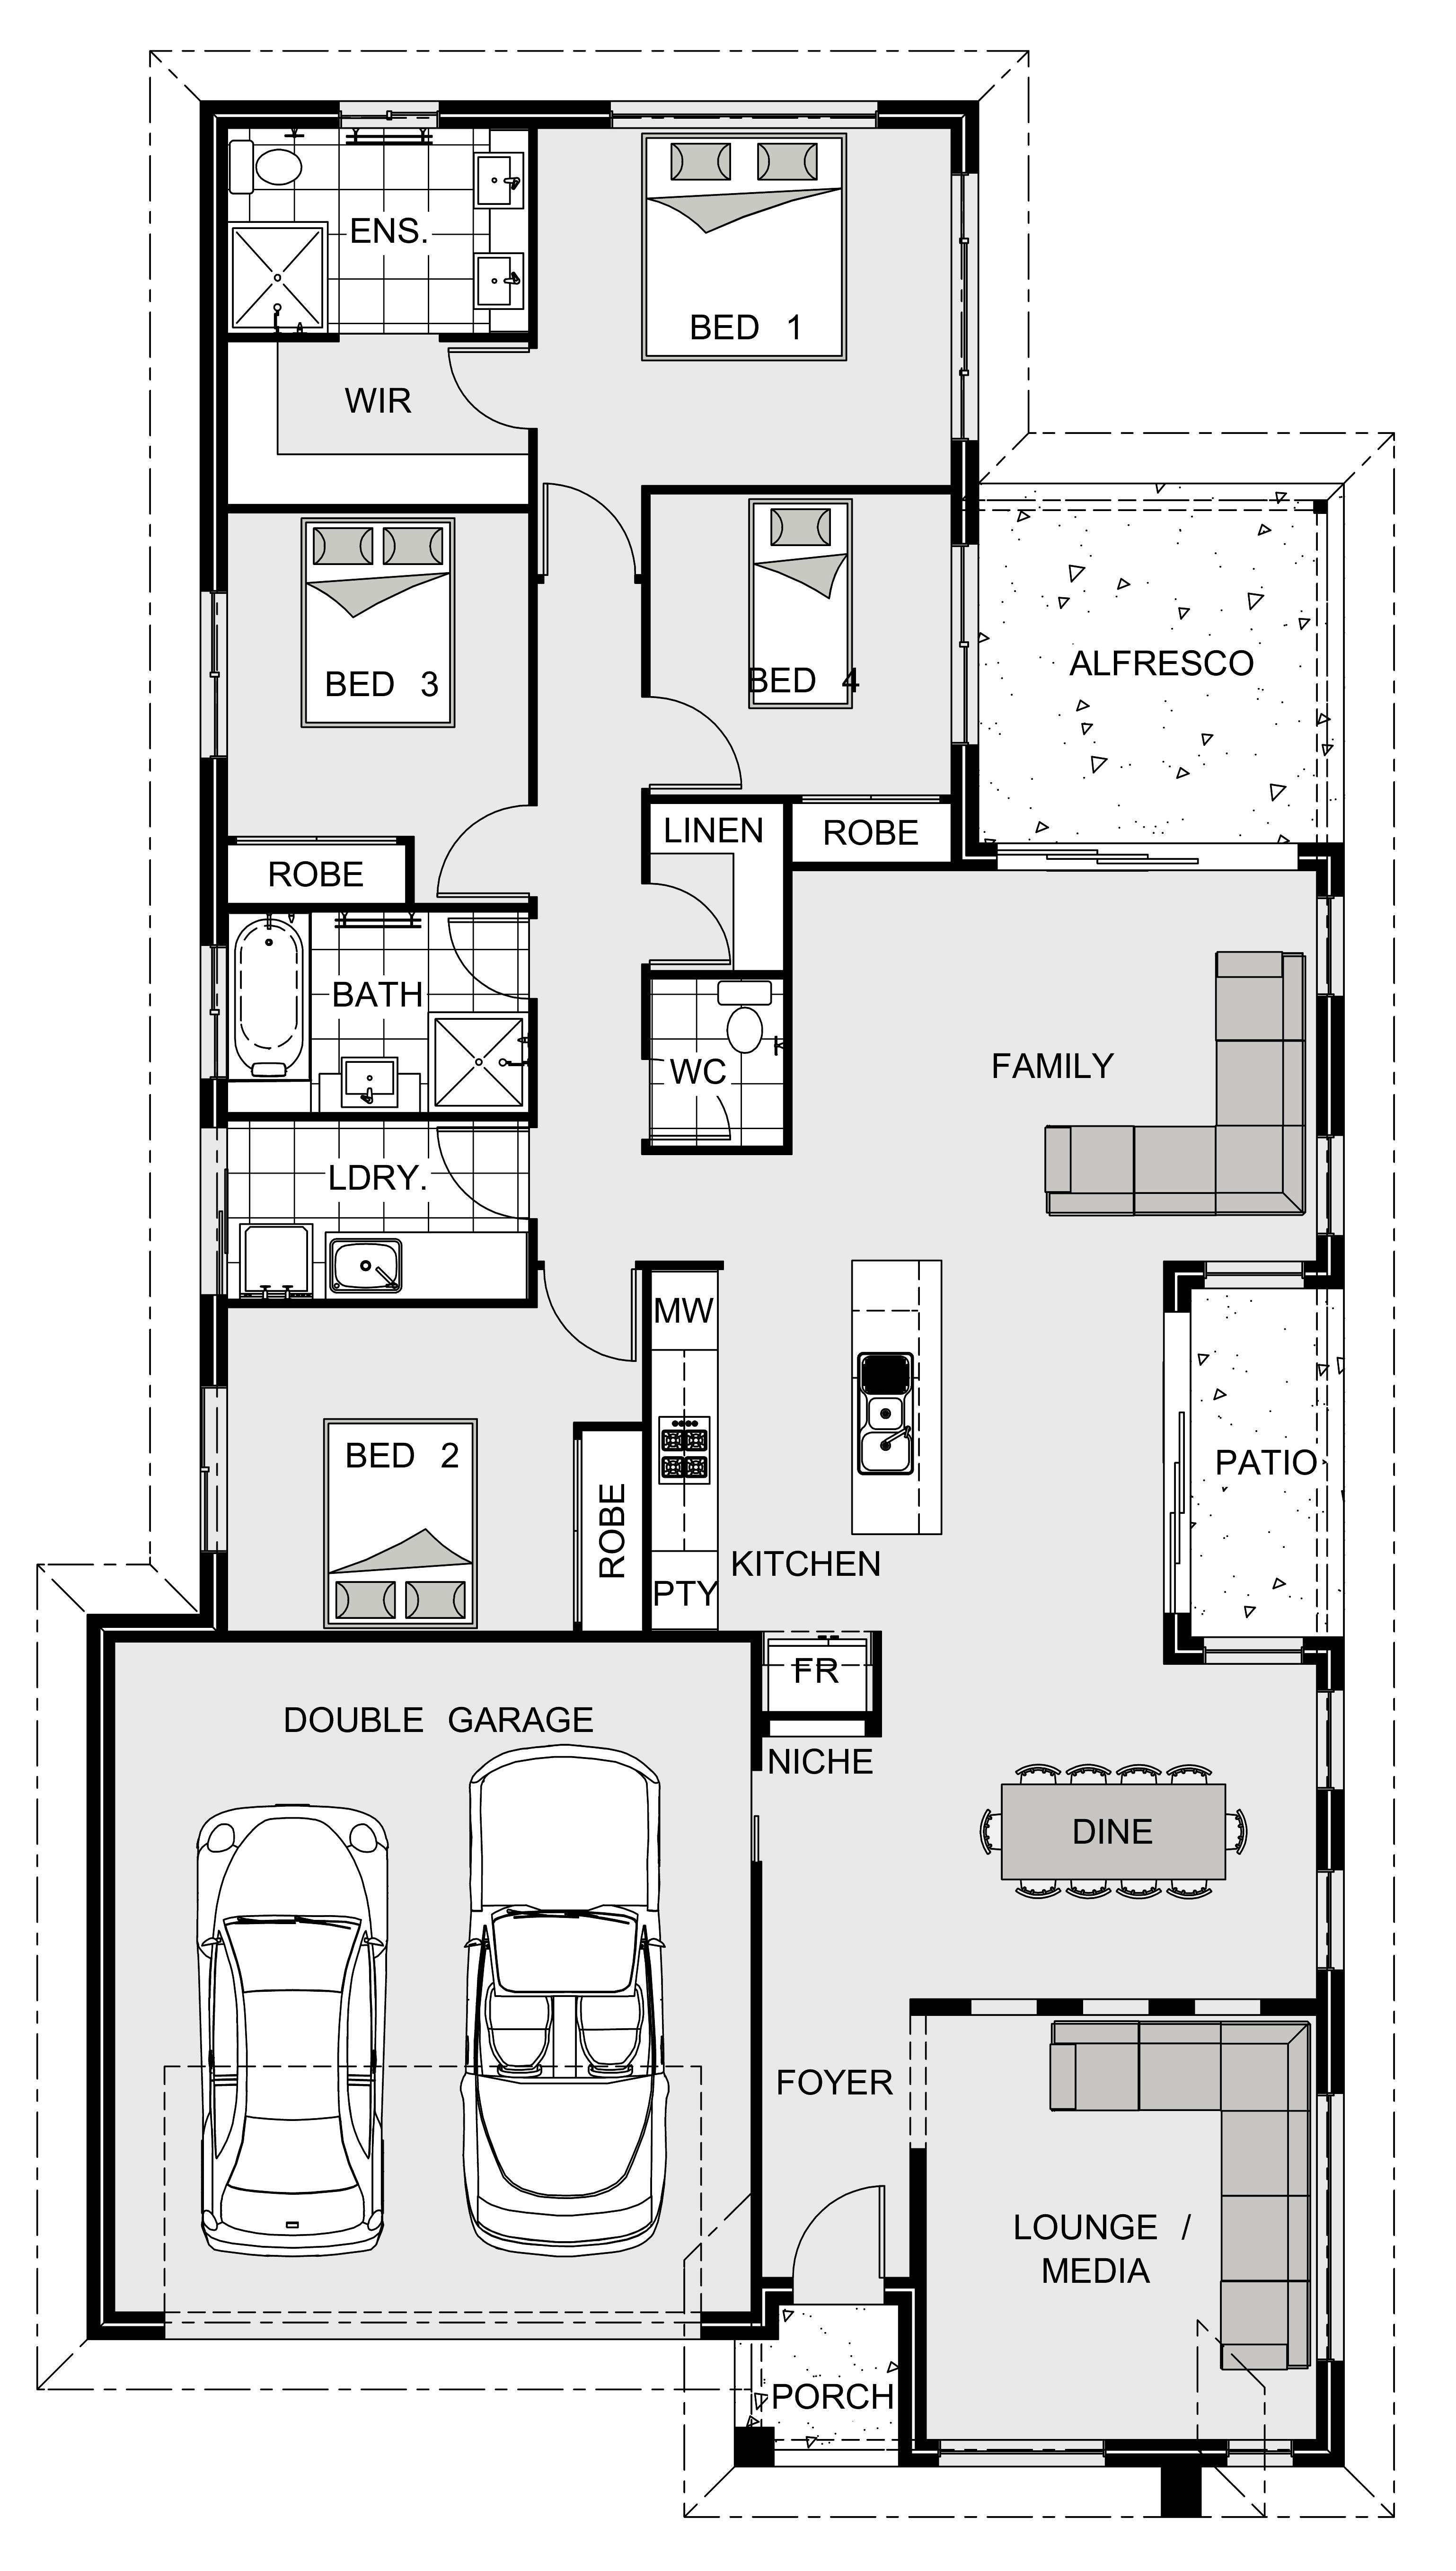 GJOceanrside206FloorPlanRPM